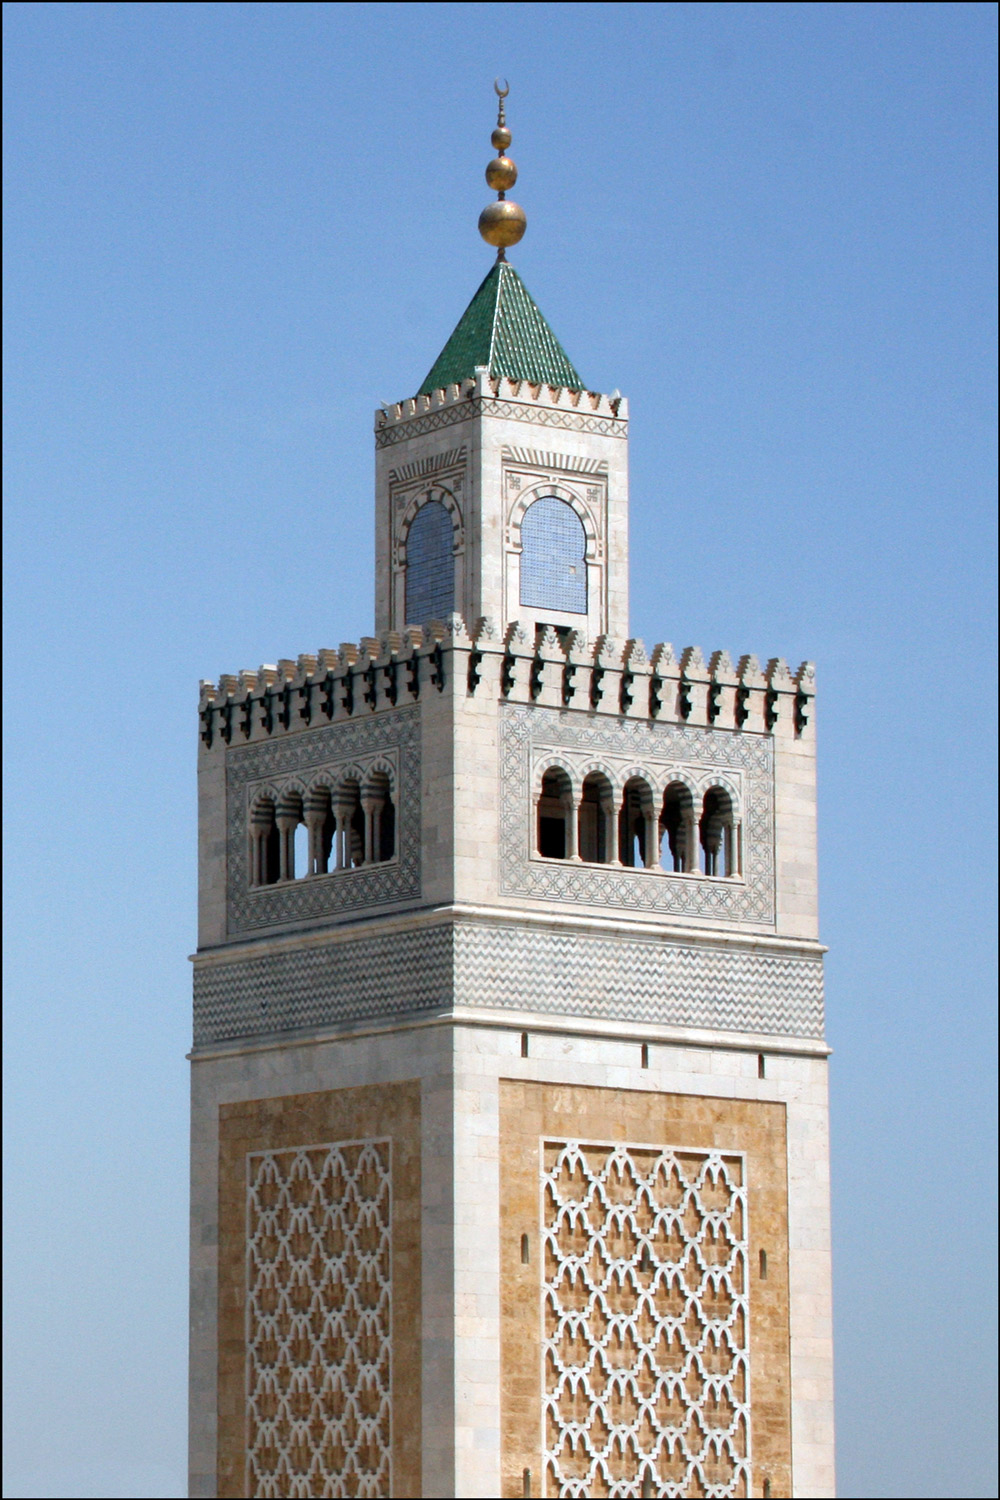 Minaret of Al-Zaytuna Mosque